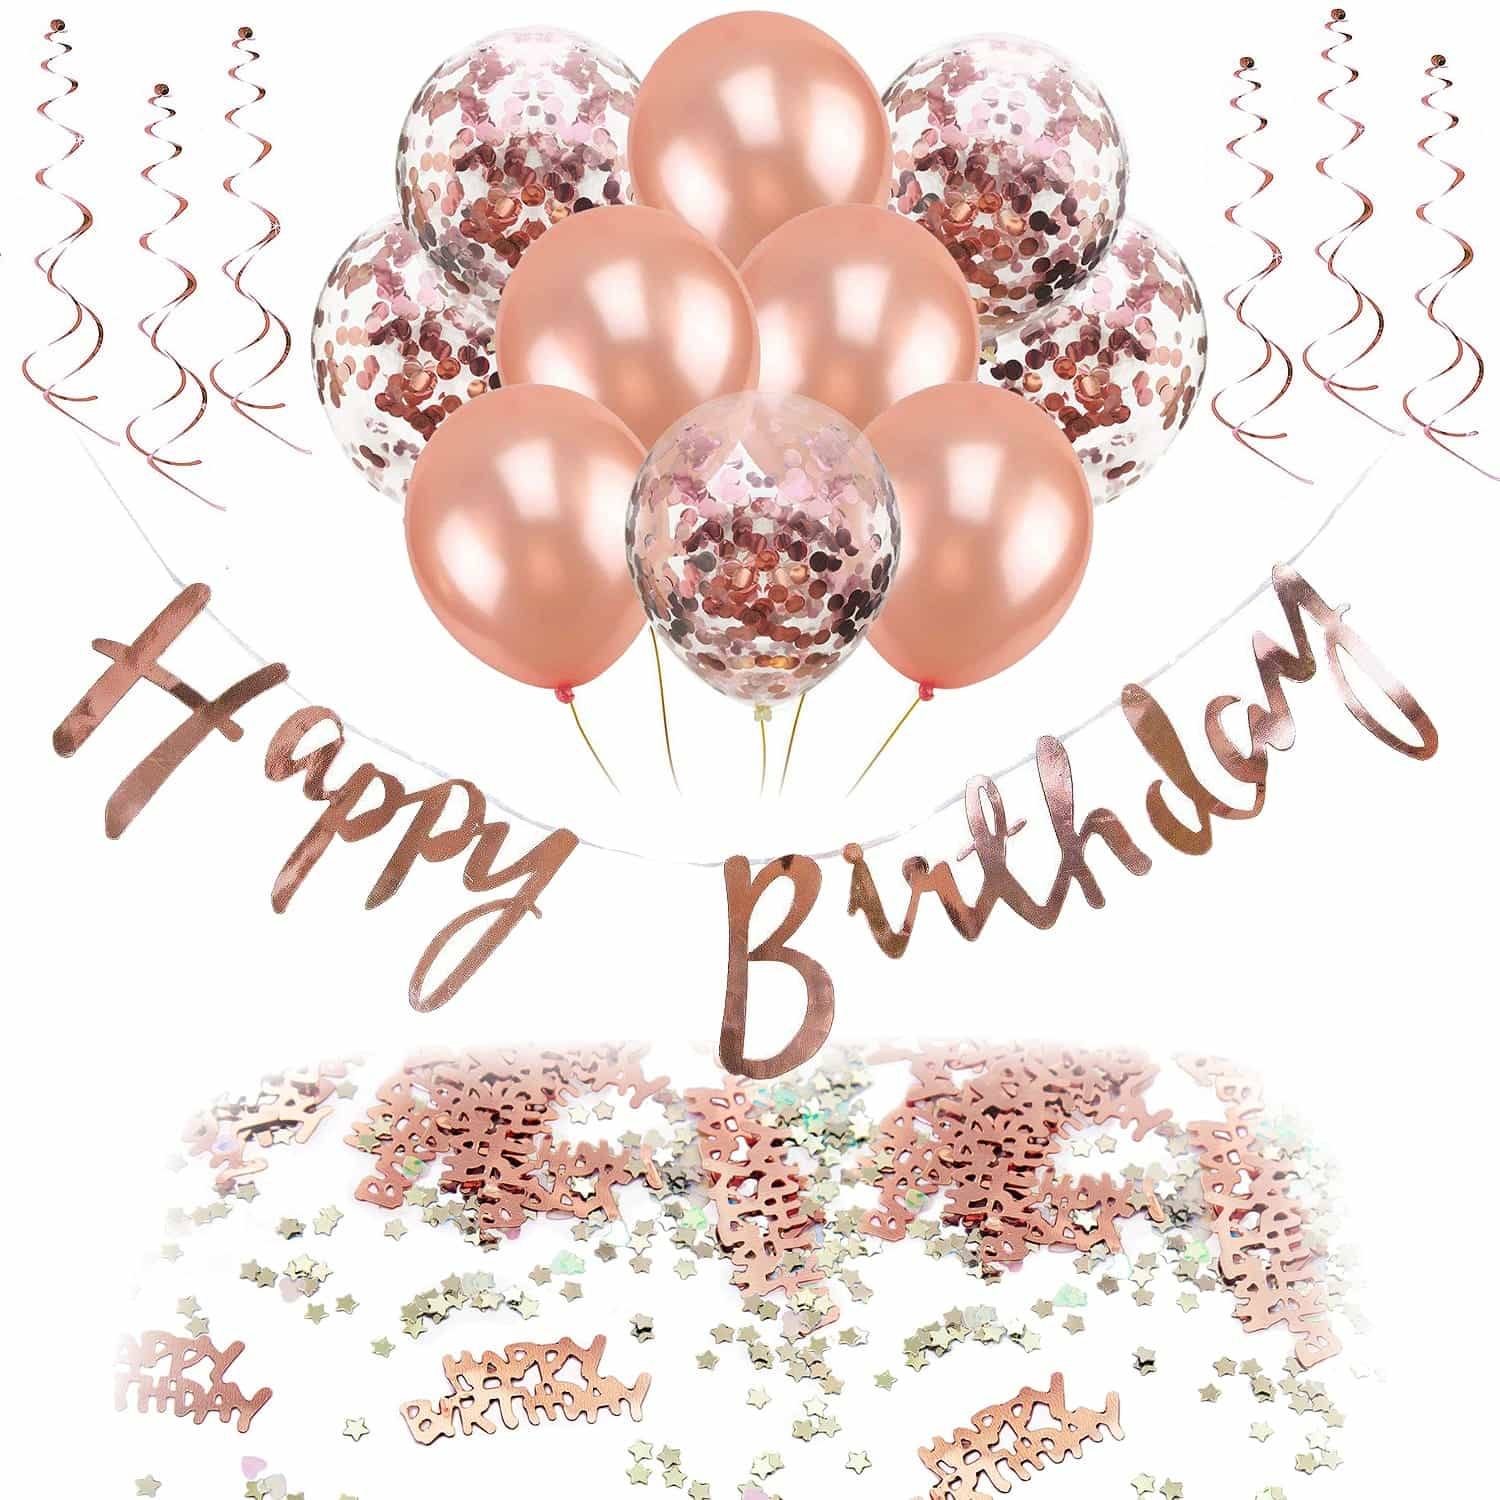 Rosegold Deko Happy Birthday Geburtstag Party Deko Set Girlande Ballons Konfetti Uvm Roségold